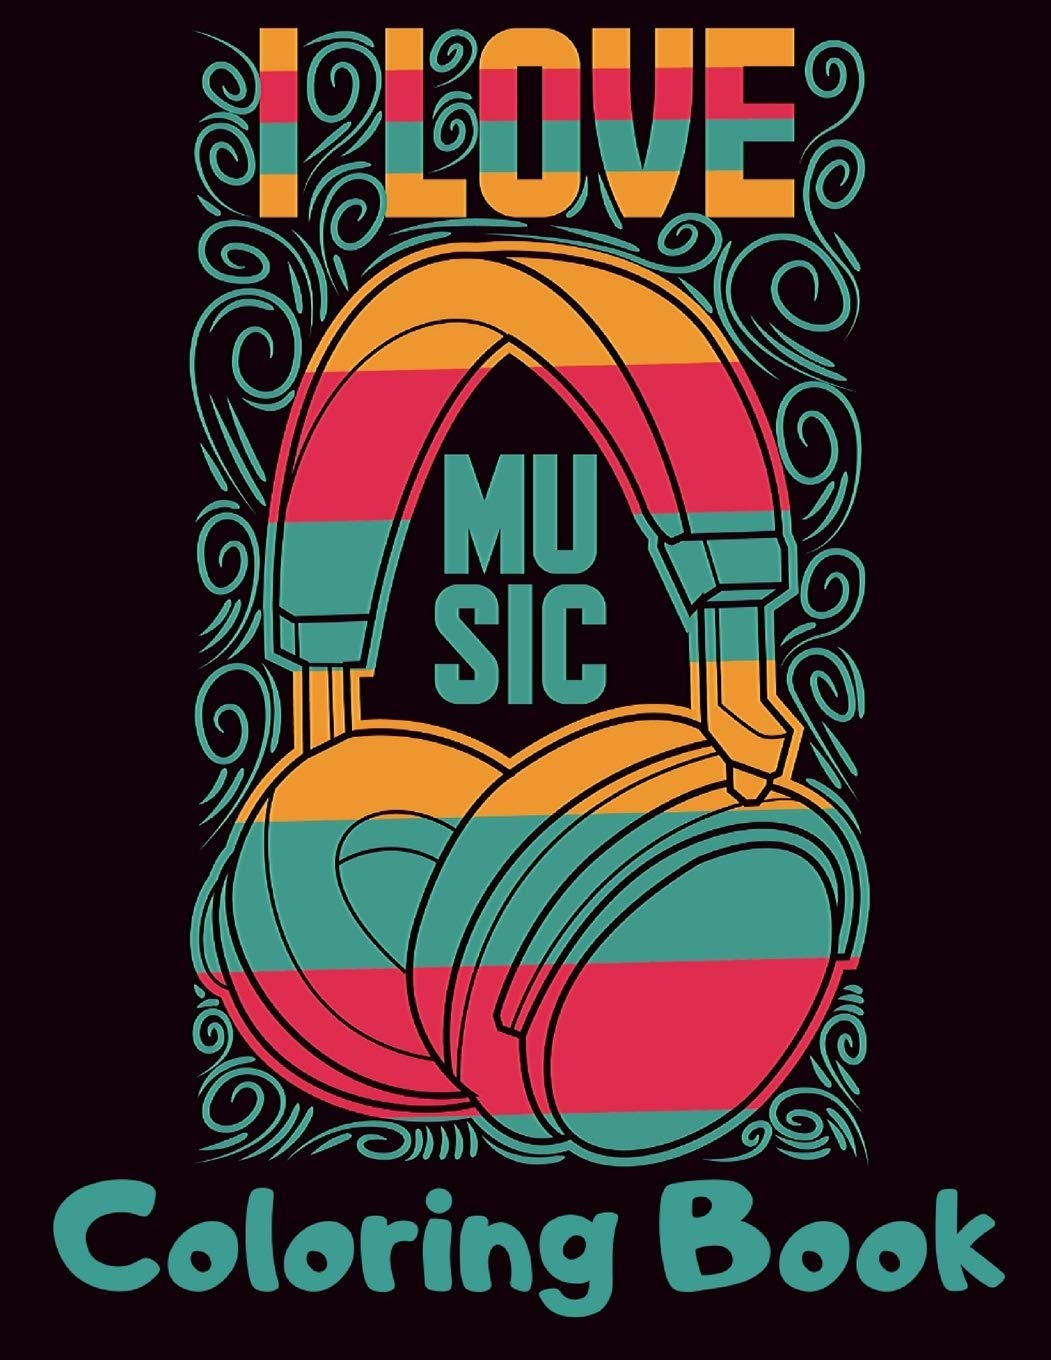 I Love Music Coloring Book: Cool Music Themed Coloring Book for Adults for Relaxation and Stress Relief - Unique Gift for Music Lovers Men & Women